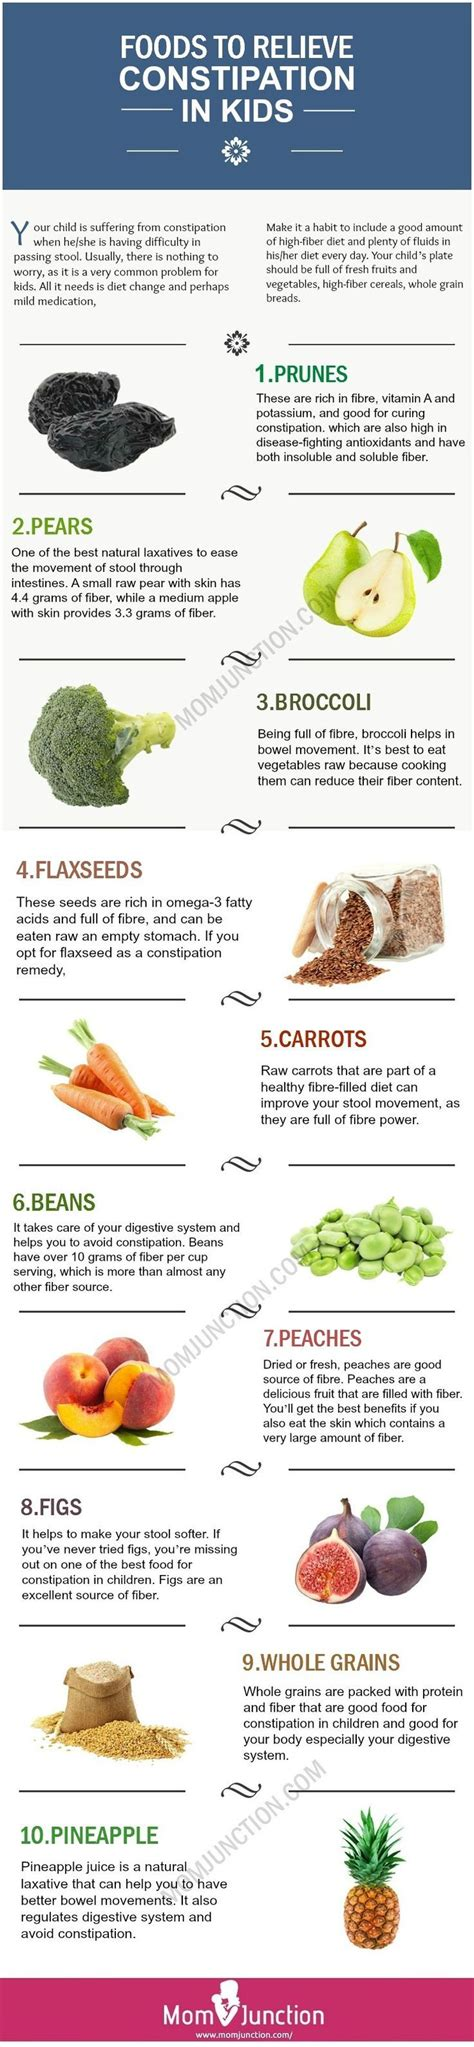 7 Things That Help Constipation by 25 Foods That Help Relieve Constipation In